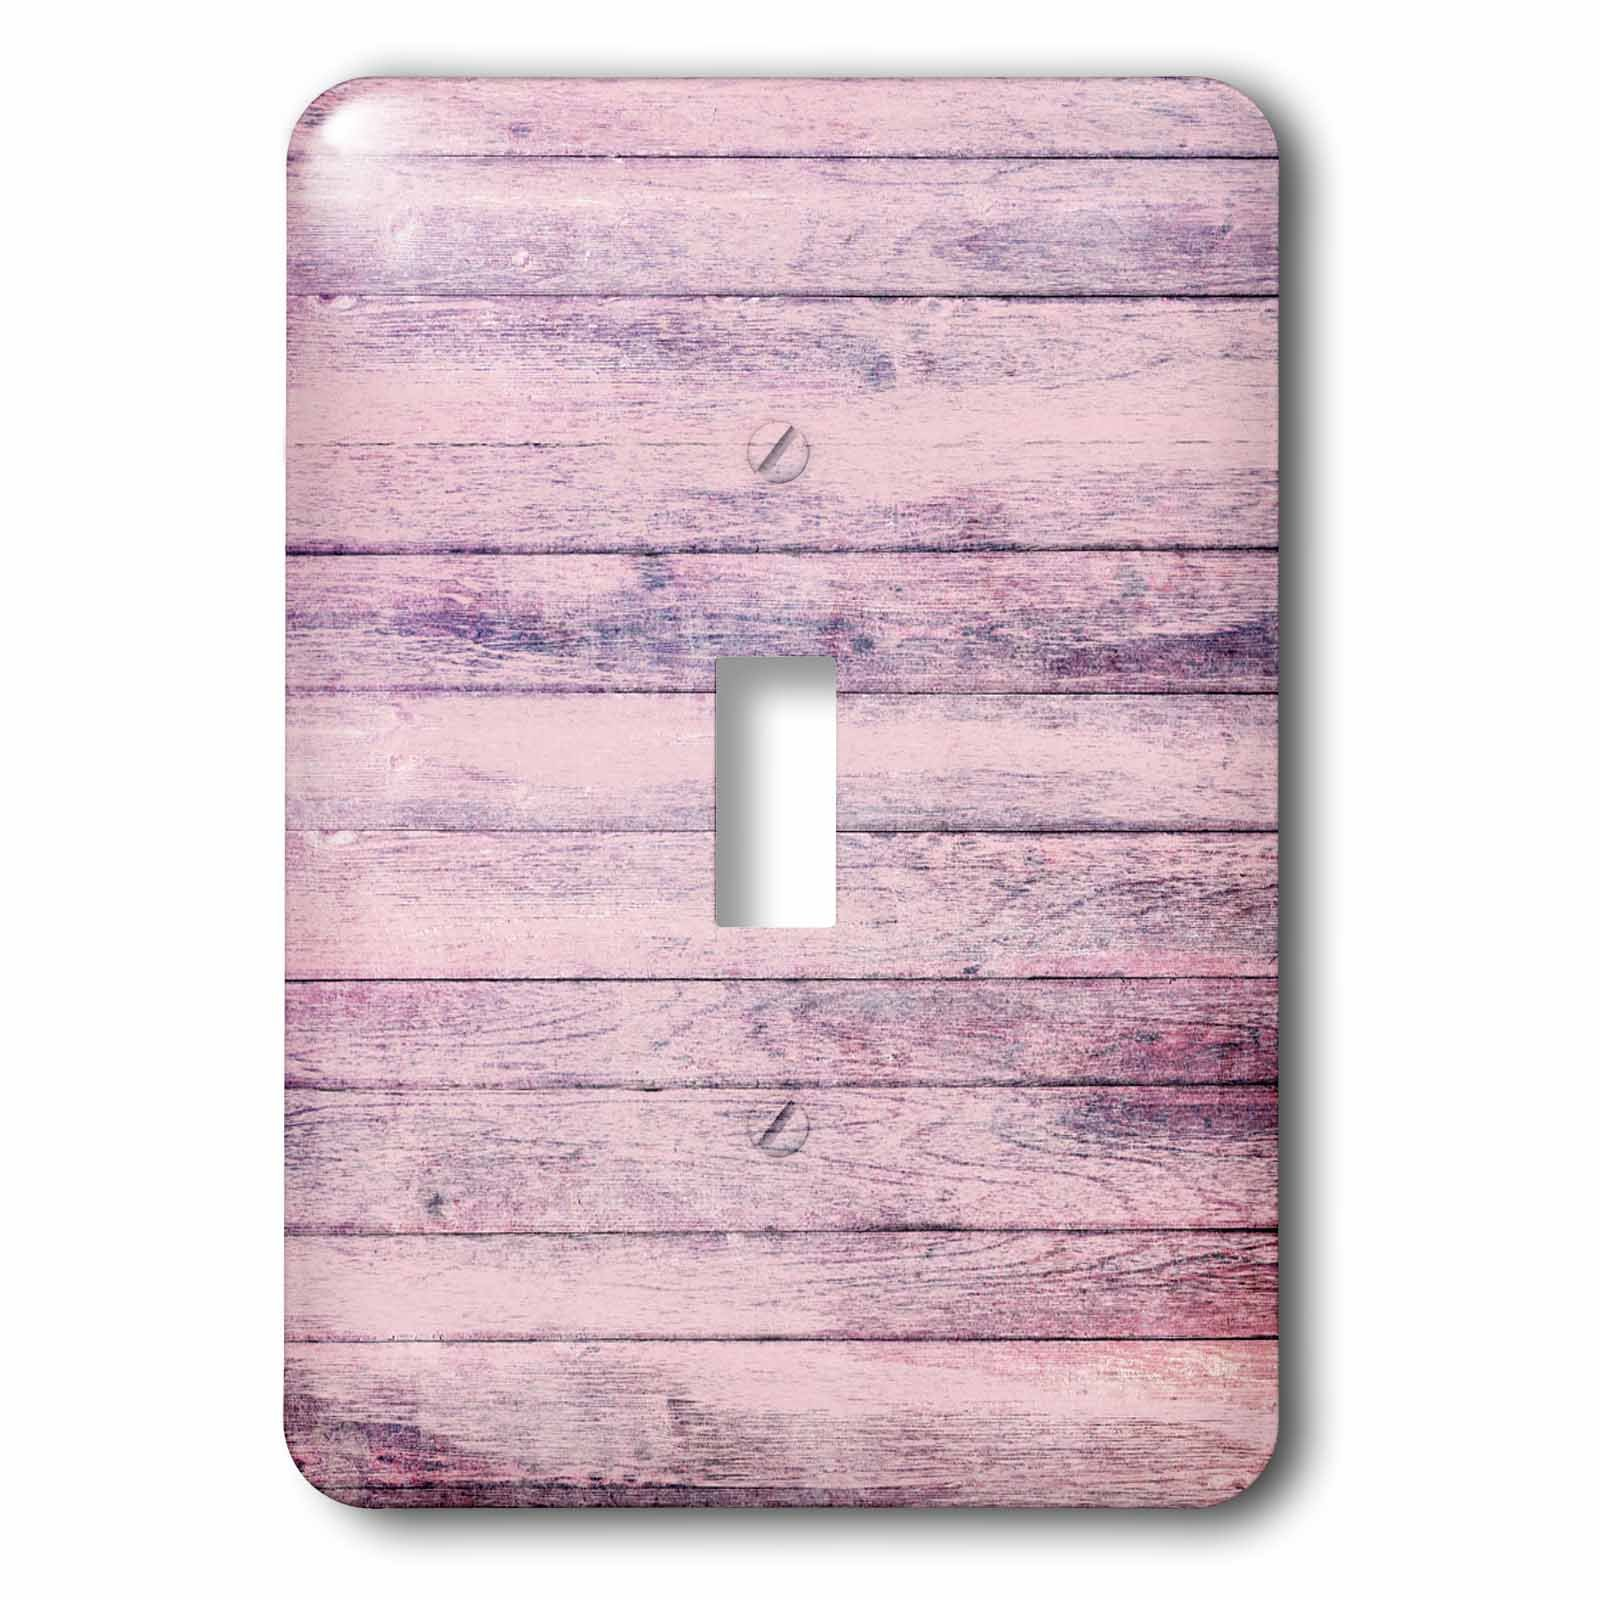 3dRose Anne Marie Baugh - Textures - Chic Purple Printed Faux Wood - Light Switch Covers - single toggle switch (lsp_283311_1)